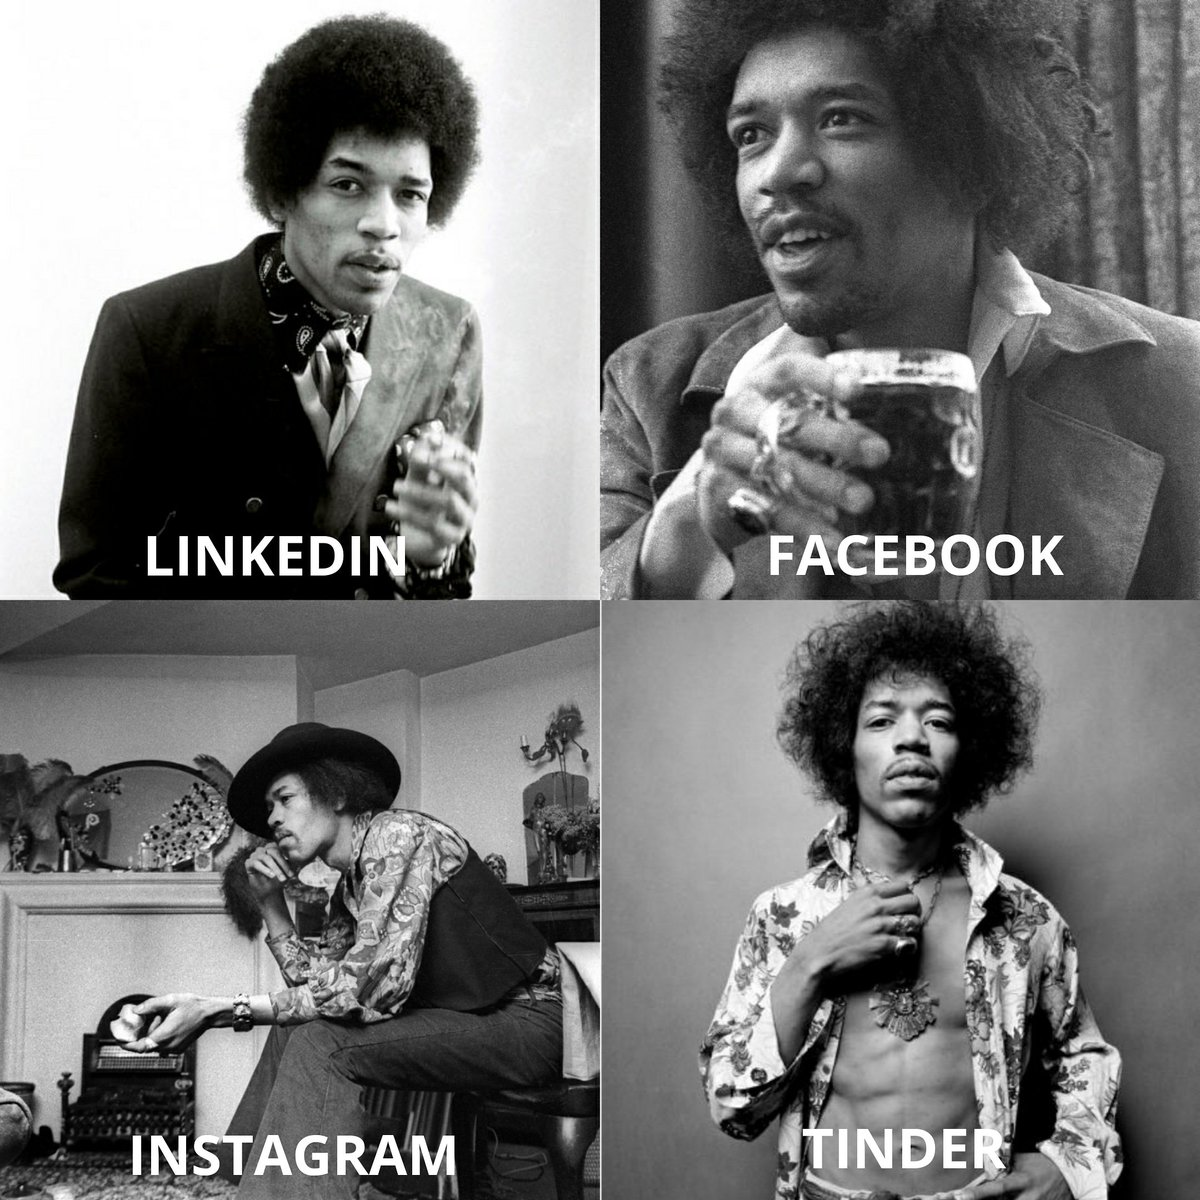 RT @HandelHendrix: Had to get in on this #dollypartonchallenge but with a #jimihendrix twist https://t.co/uPYa1zqhzN